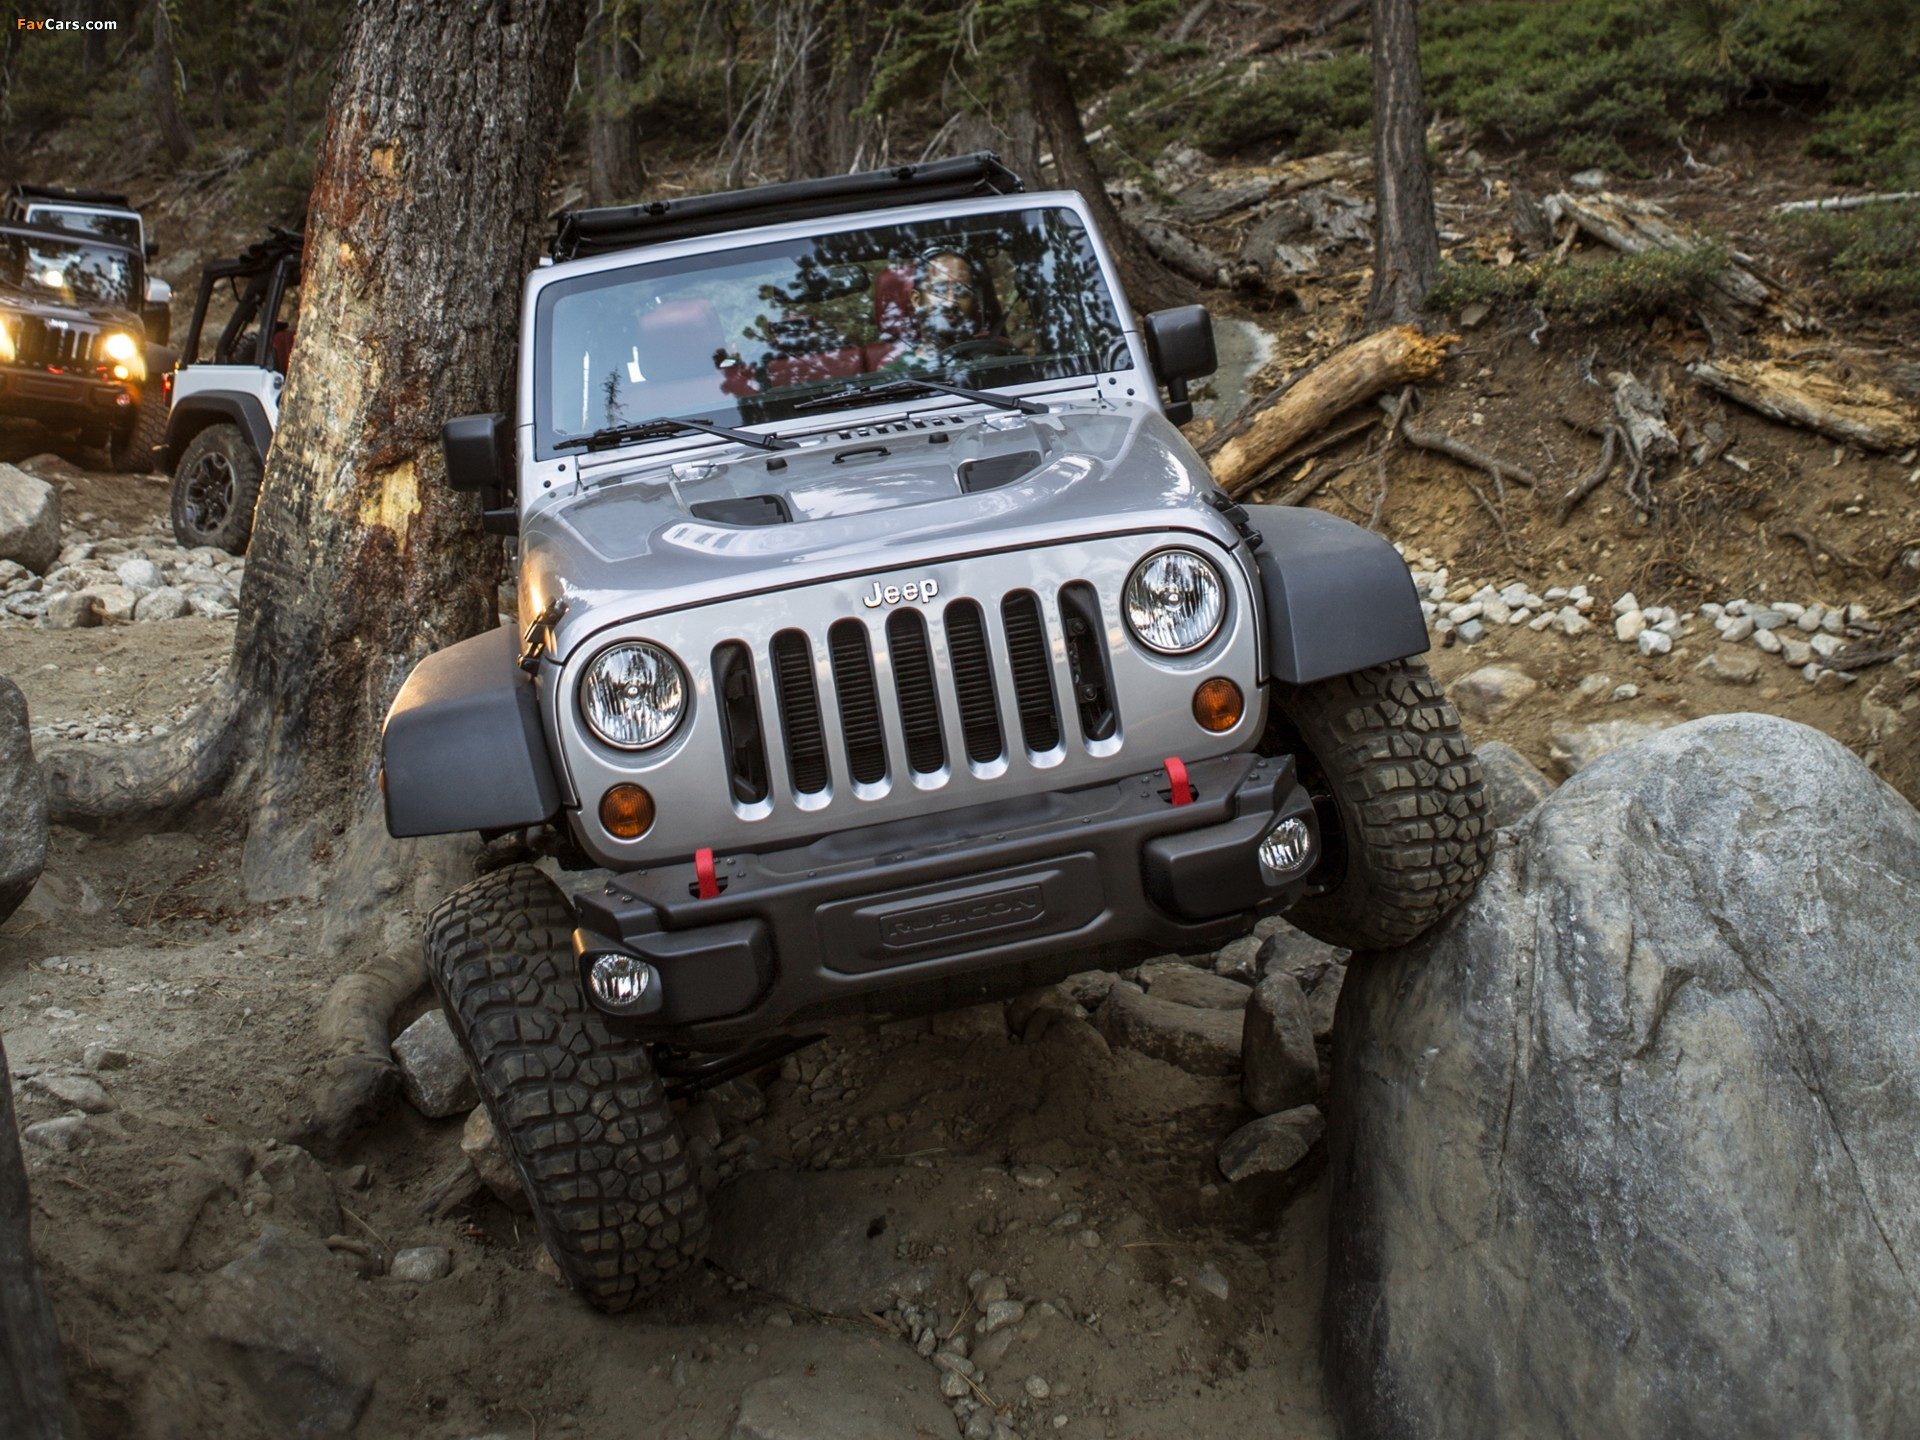 Jeep Wrangler Unlimited Rubicon 10th Anniversary (JK) 2013 wallpapers (1920 x 1440)